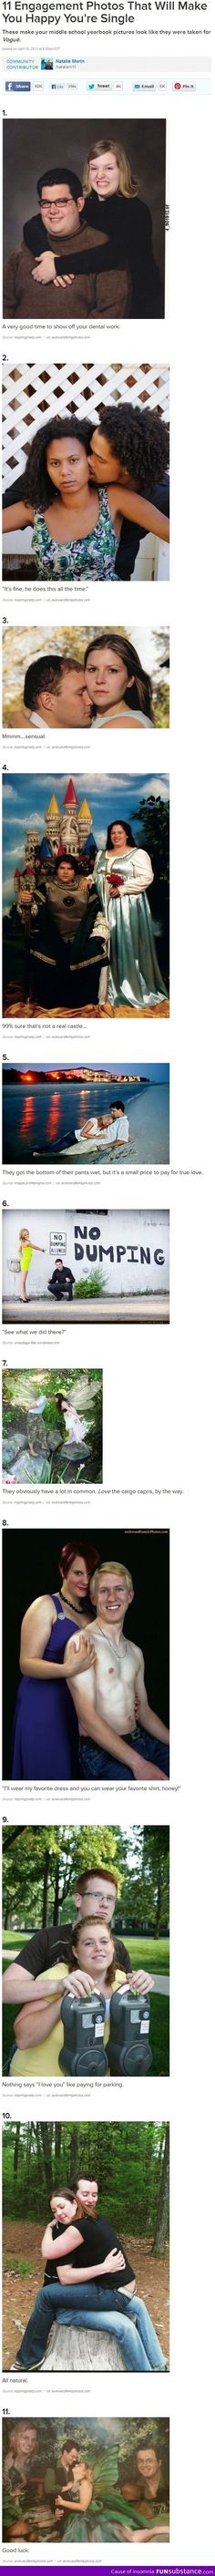 Fail engagement photos, I'm dying...